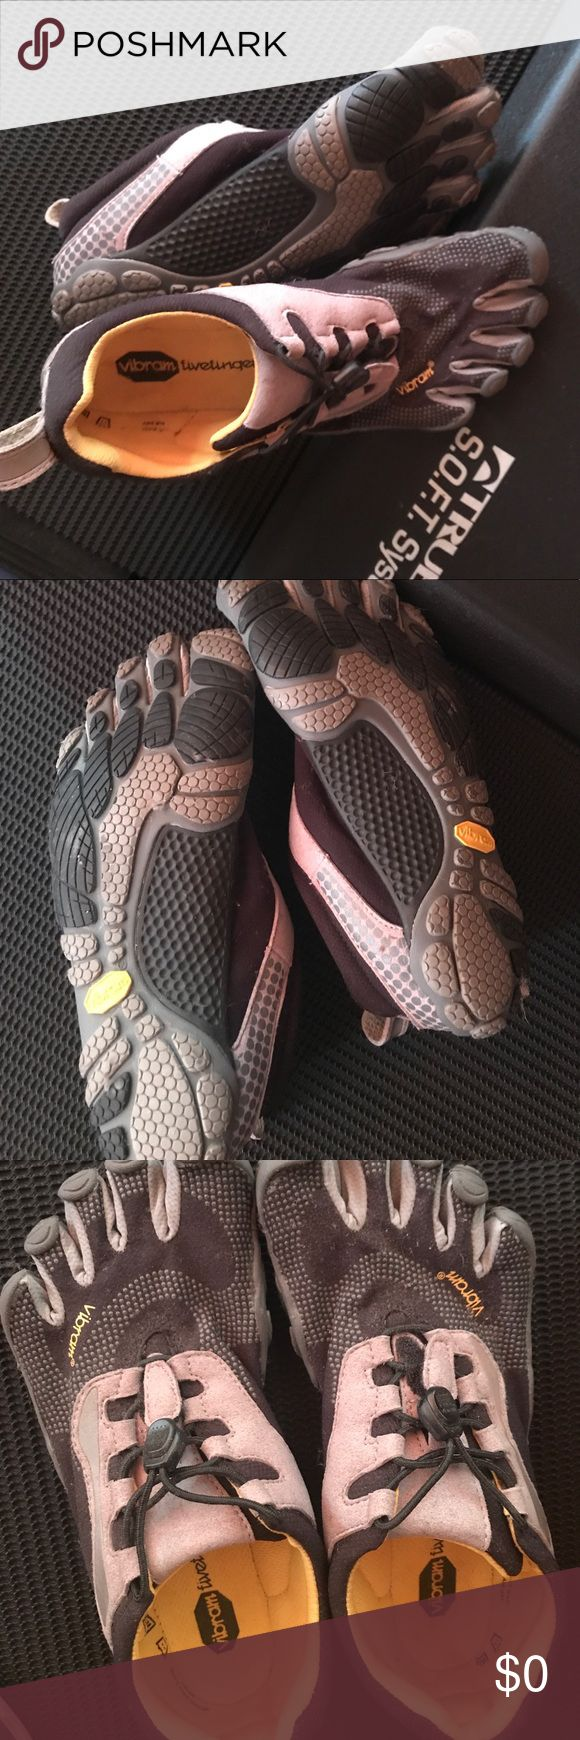 EUC barely used VIBRAM FIVE FINGERS running shoes Used 2x on treadmill. Size 37, like a 6 1/2. Vibram Shoes Athletic Shoes